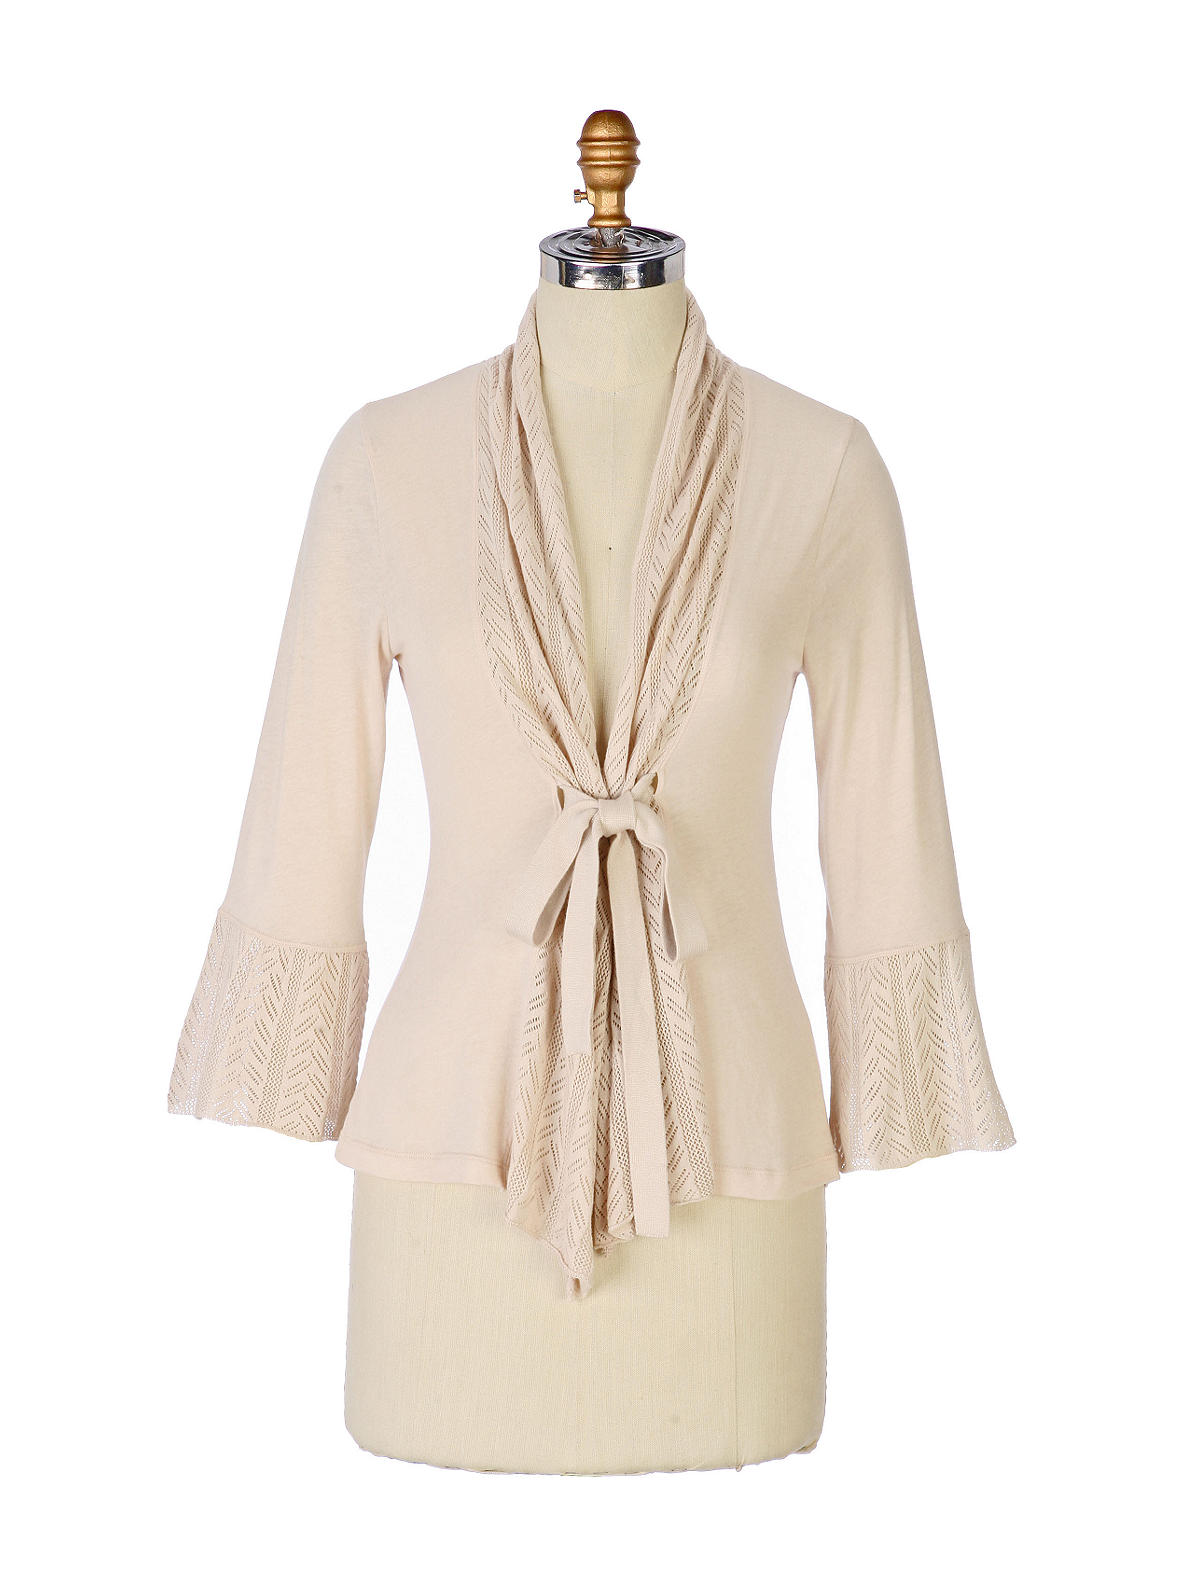 Acelin Cardi - Anthropologie.com :  romantic ivory bell sleeves anthropologie